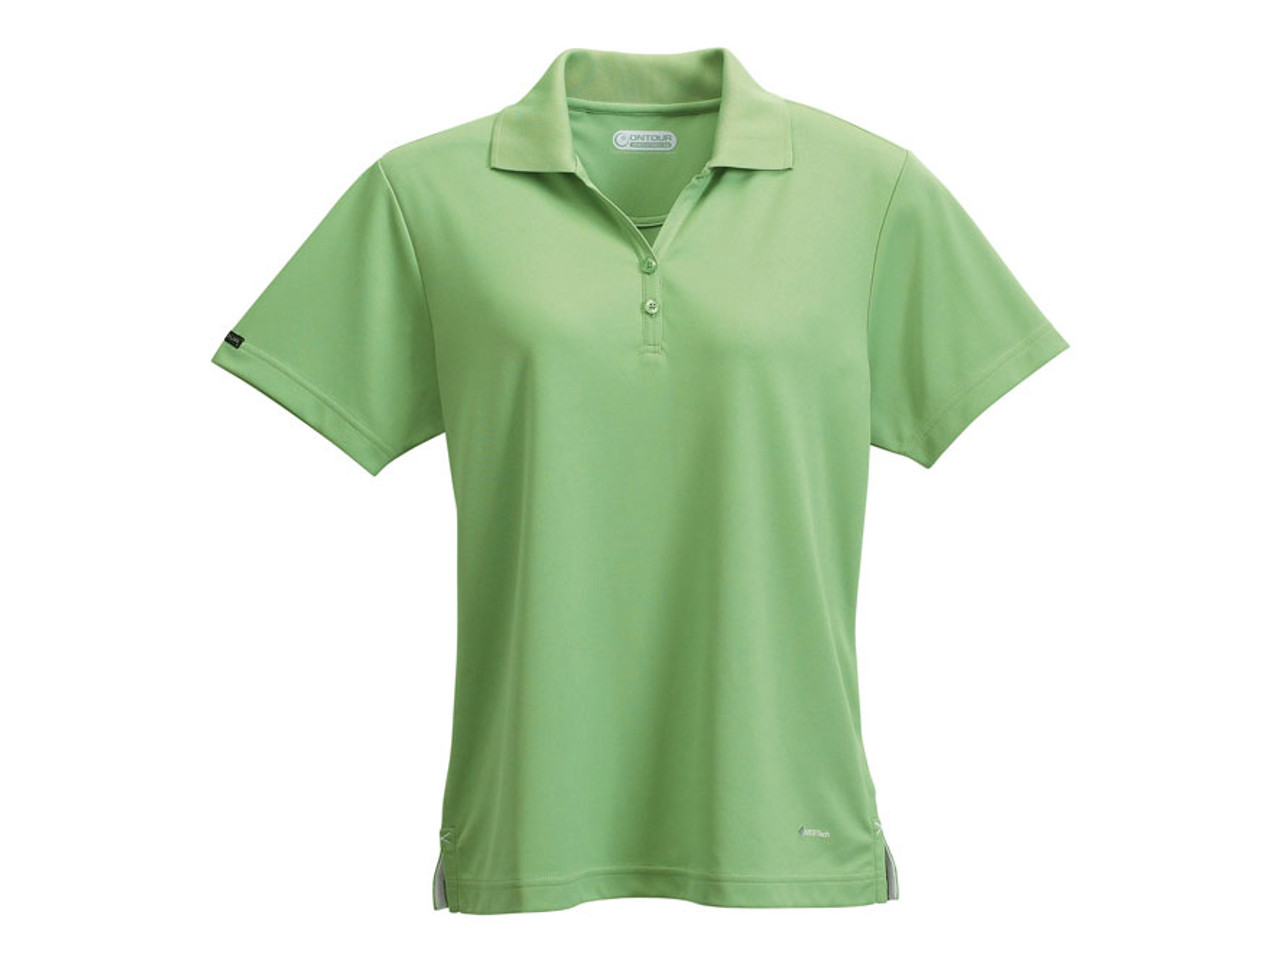 8b51f322 ... Green Tea On Tour 96252 Women's Moreno Short Sleeve Polo Shirt |  Imprintables.ca